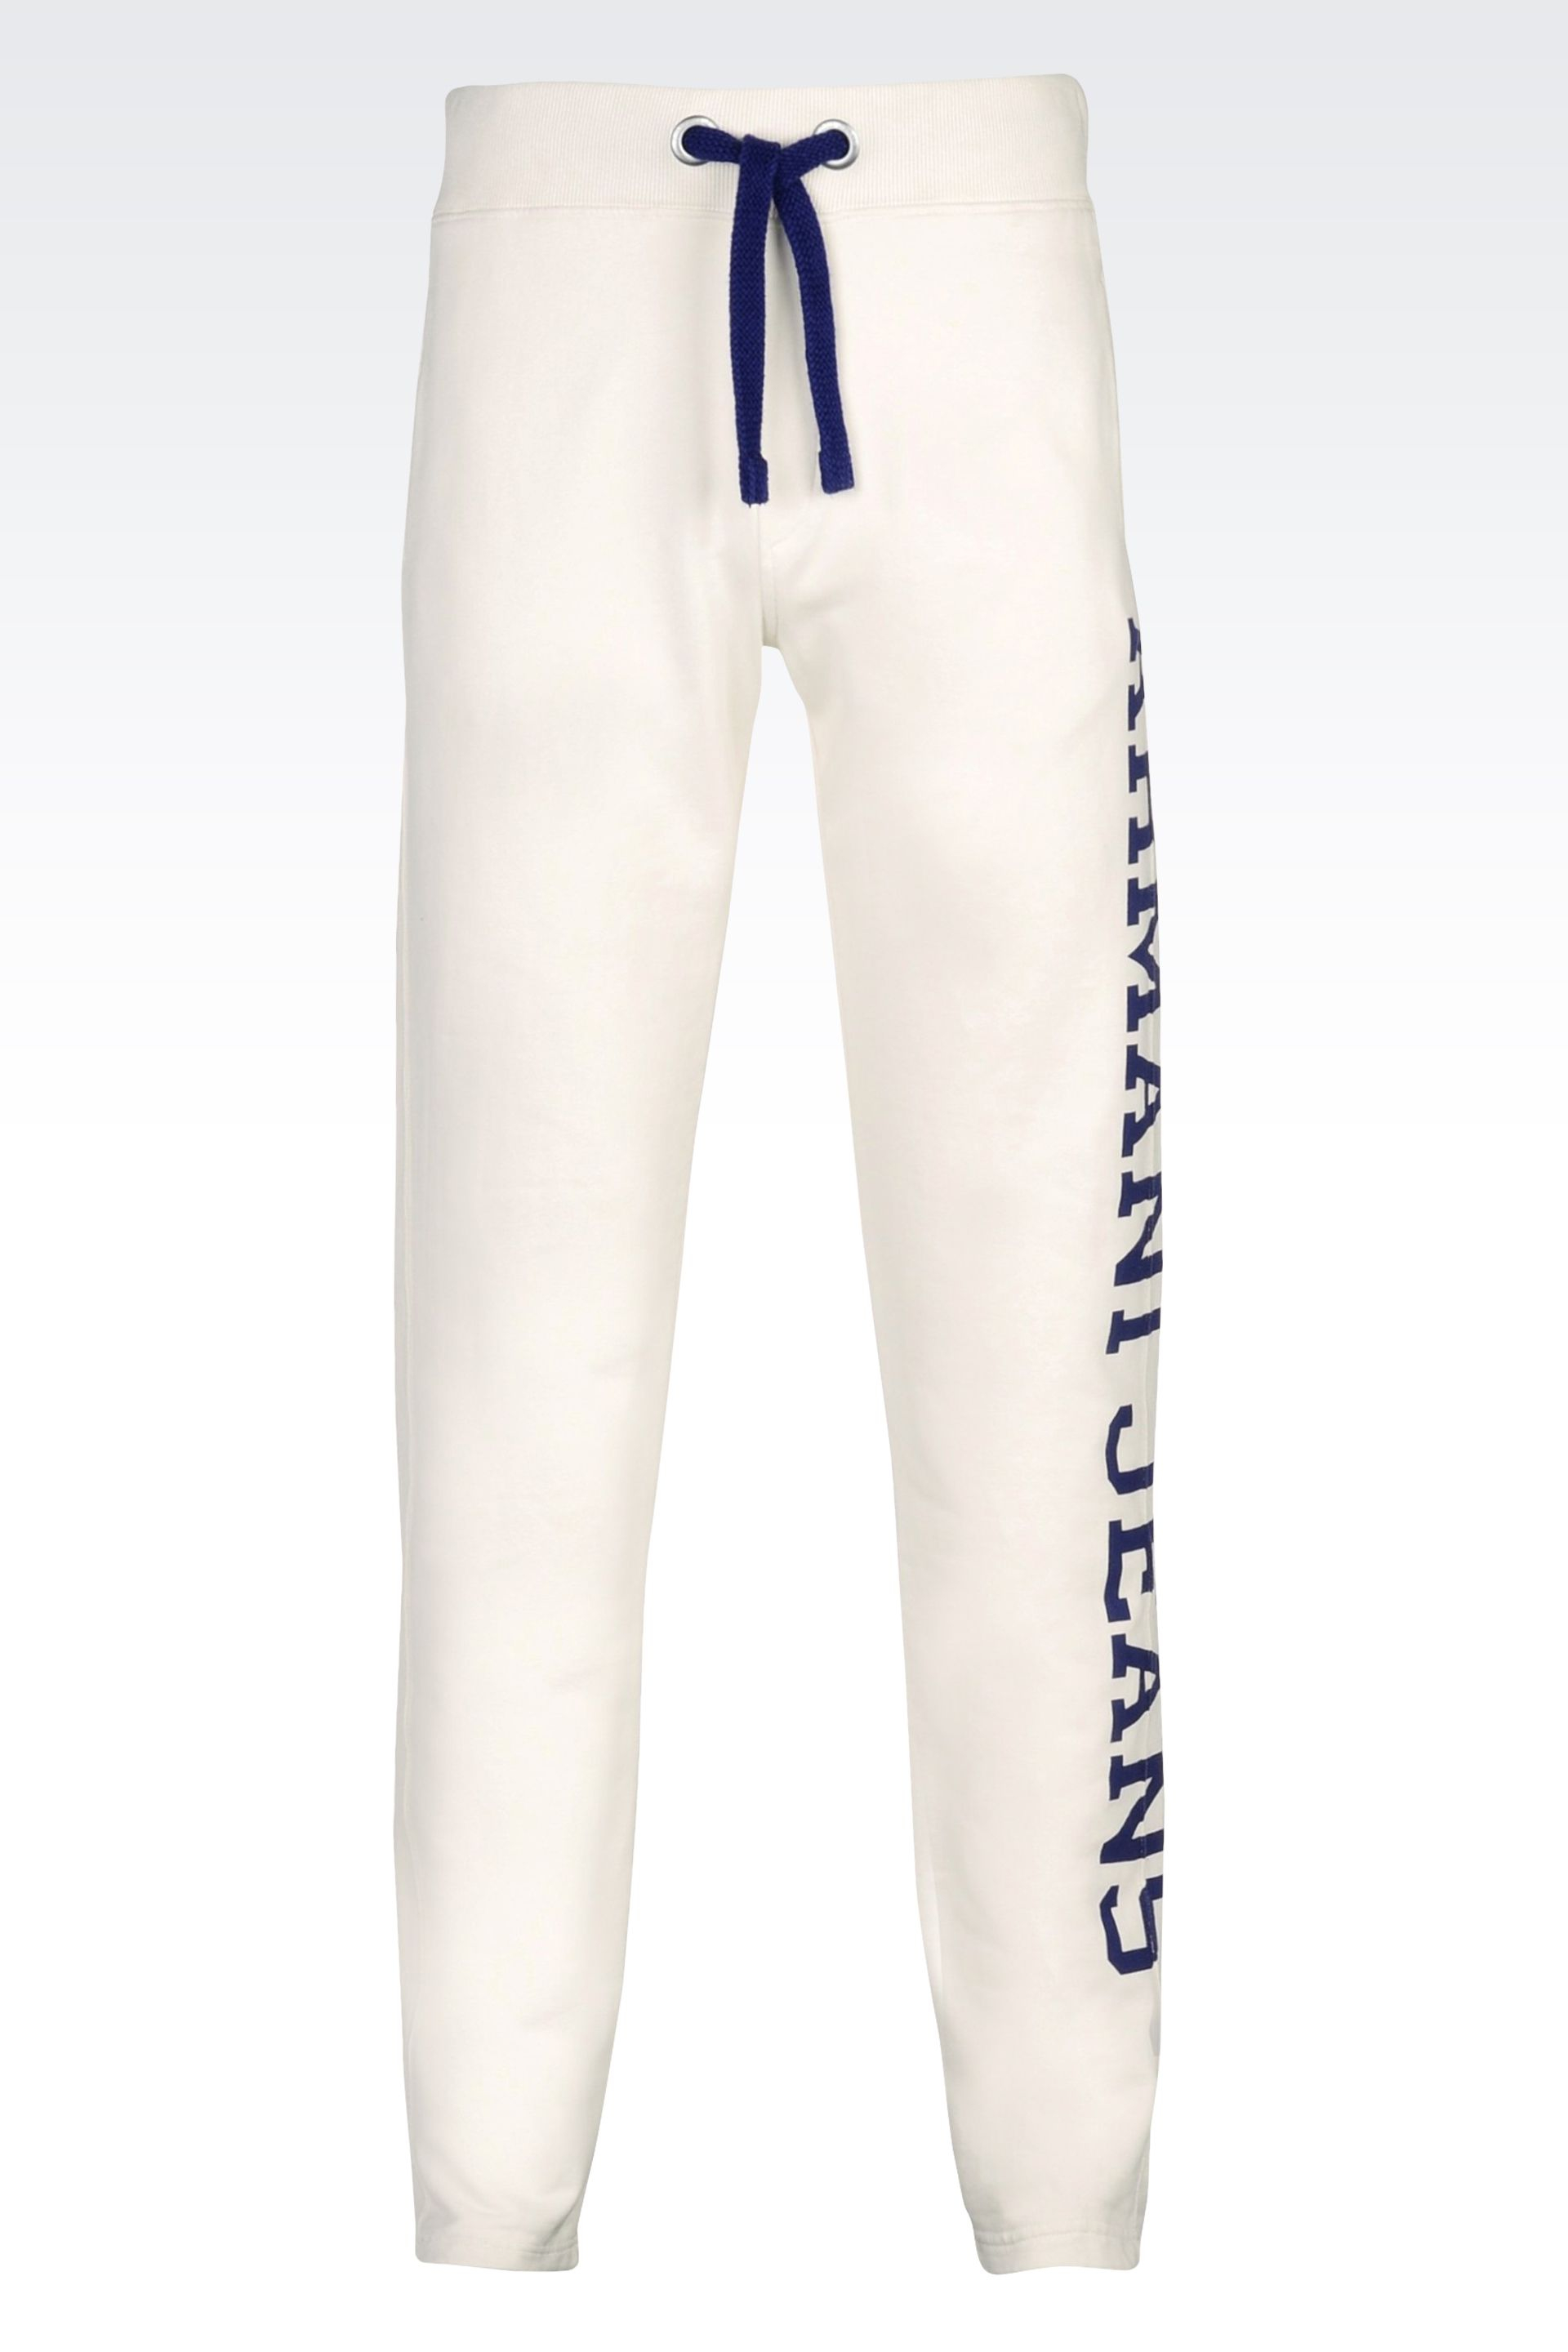 Lyst - Armani Jeans Sweat Pants in Natural for Men 3b2611accac2